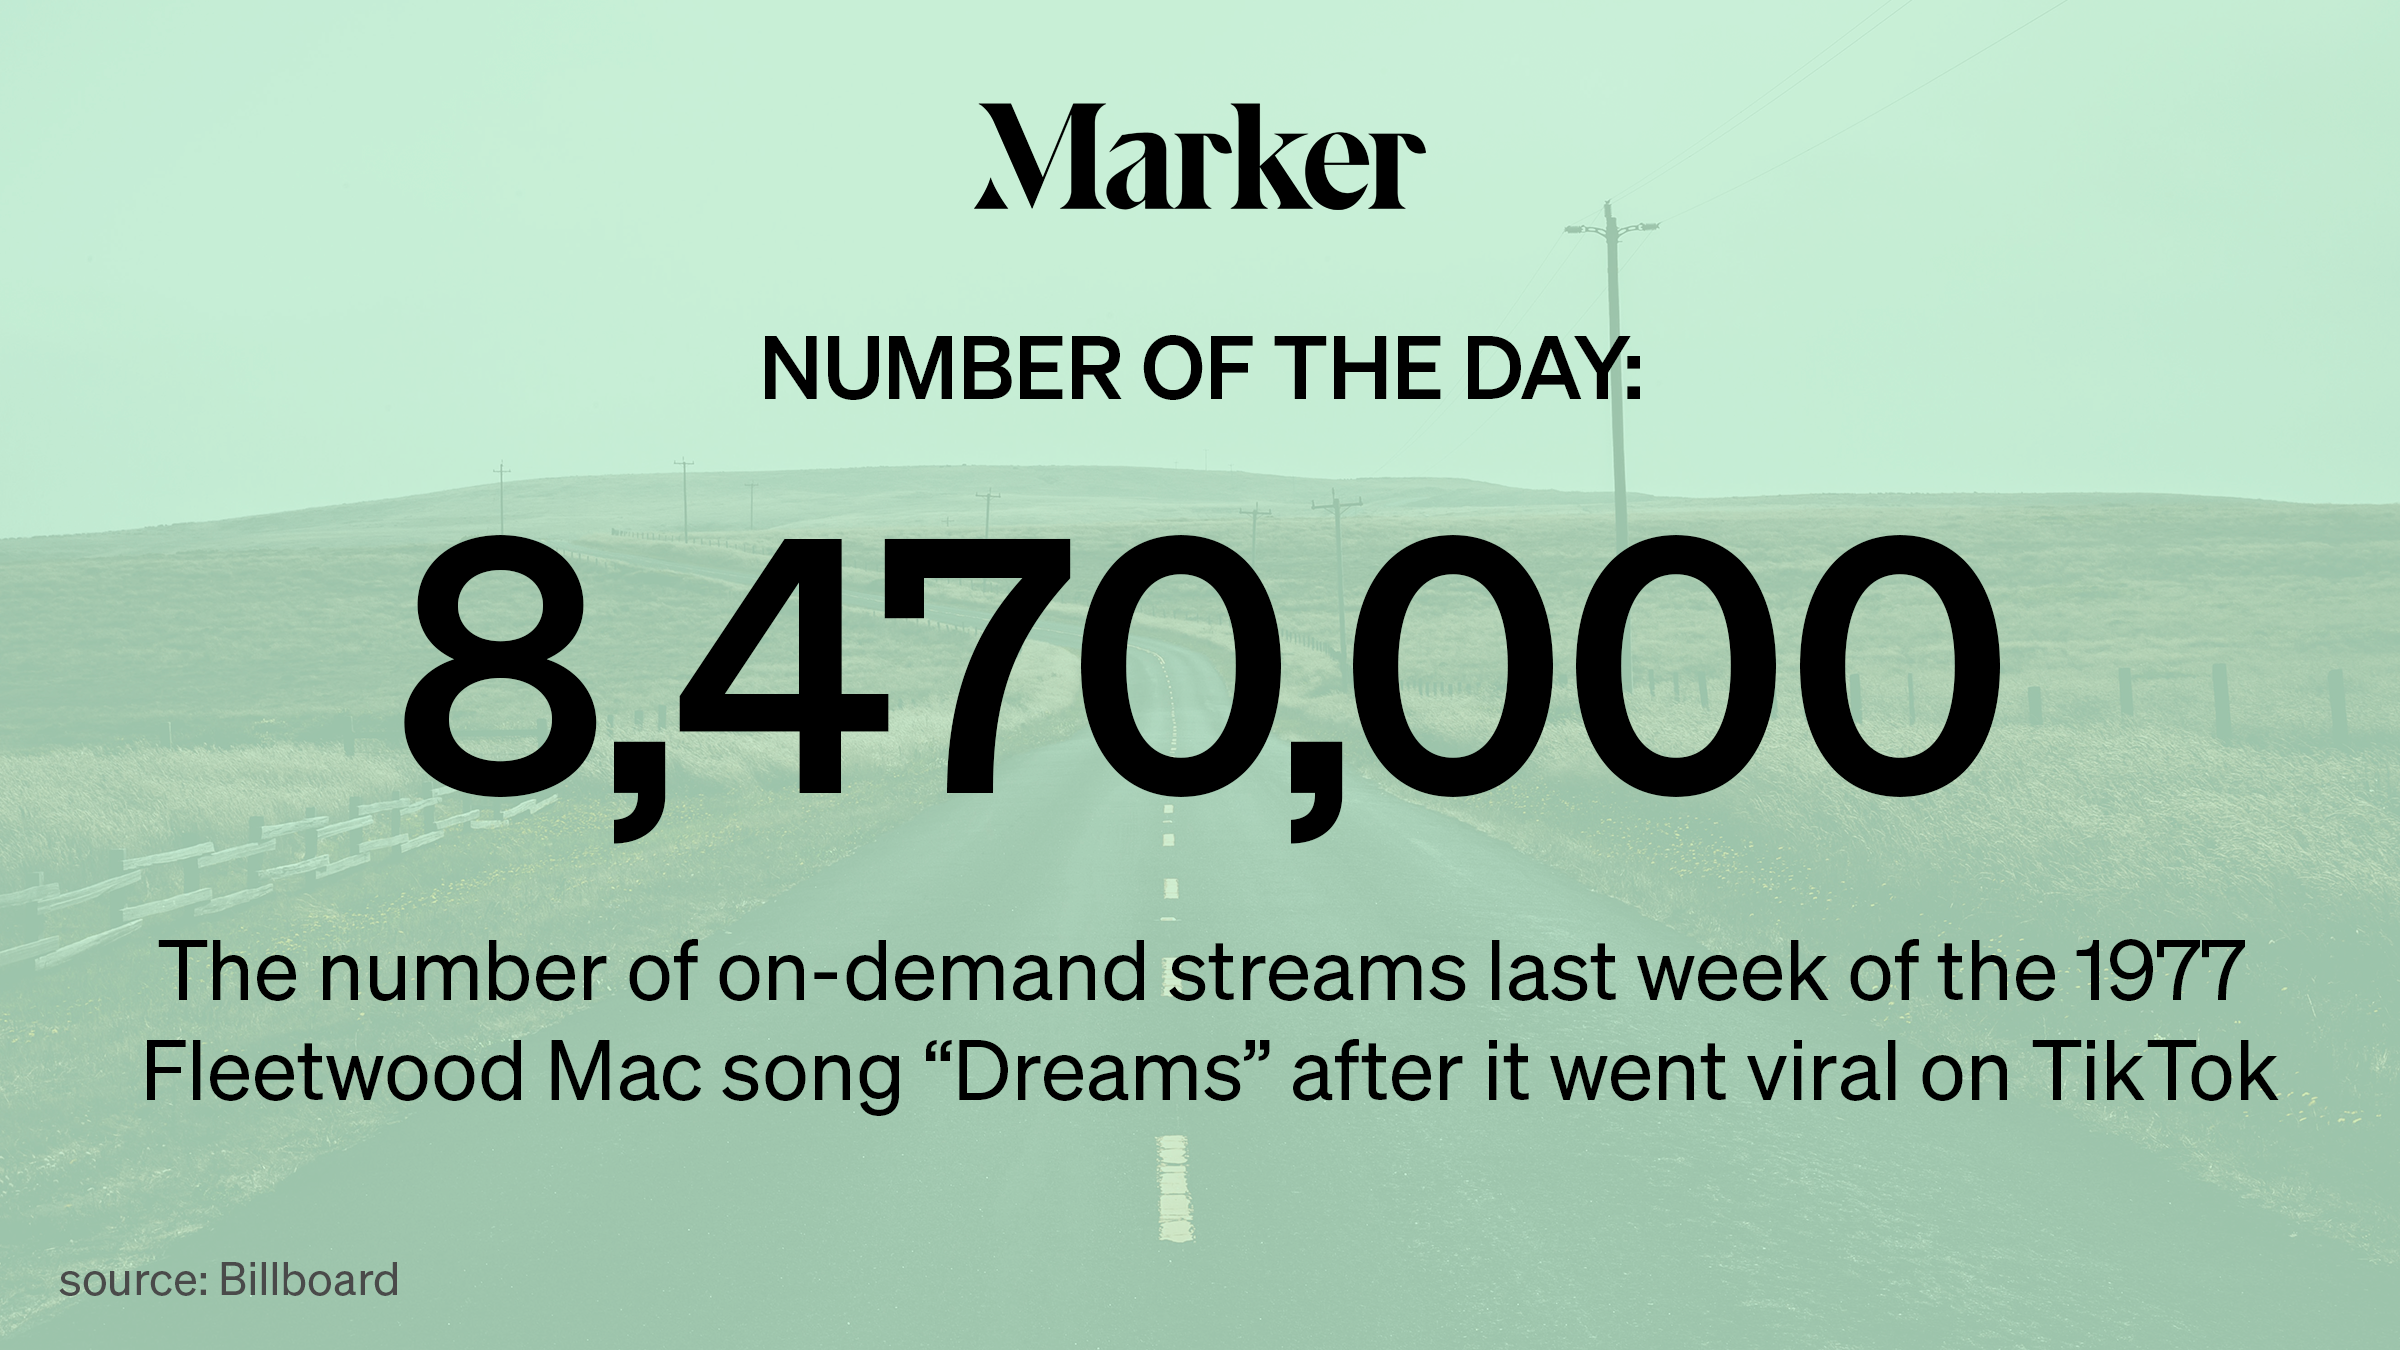 Fleetwood Mac S Dreams Hits Number 1 On The Itunes Charts Thanks To A Viral Tiktok Marker